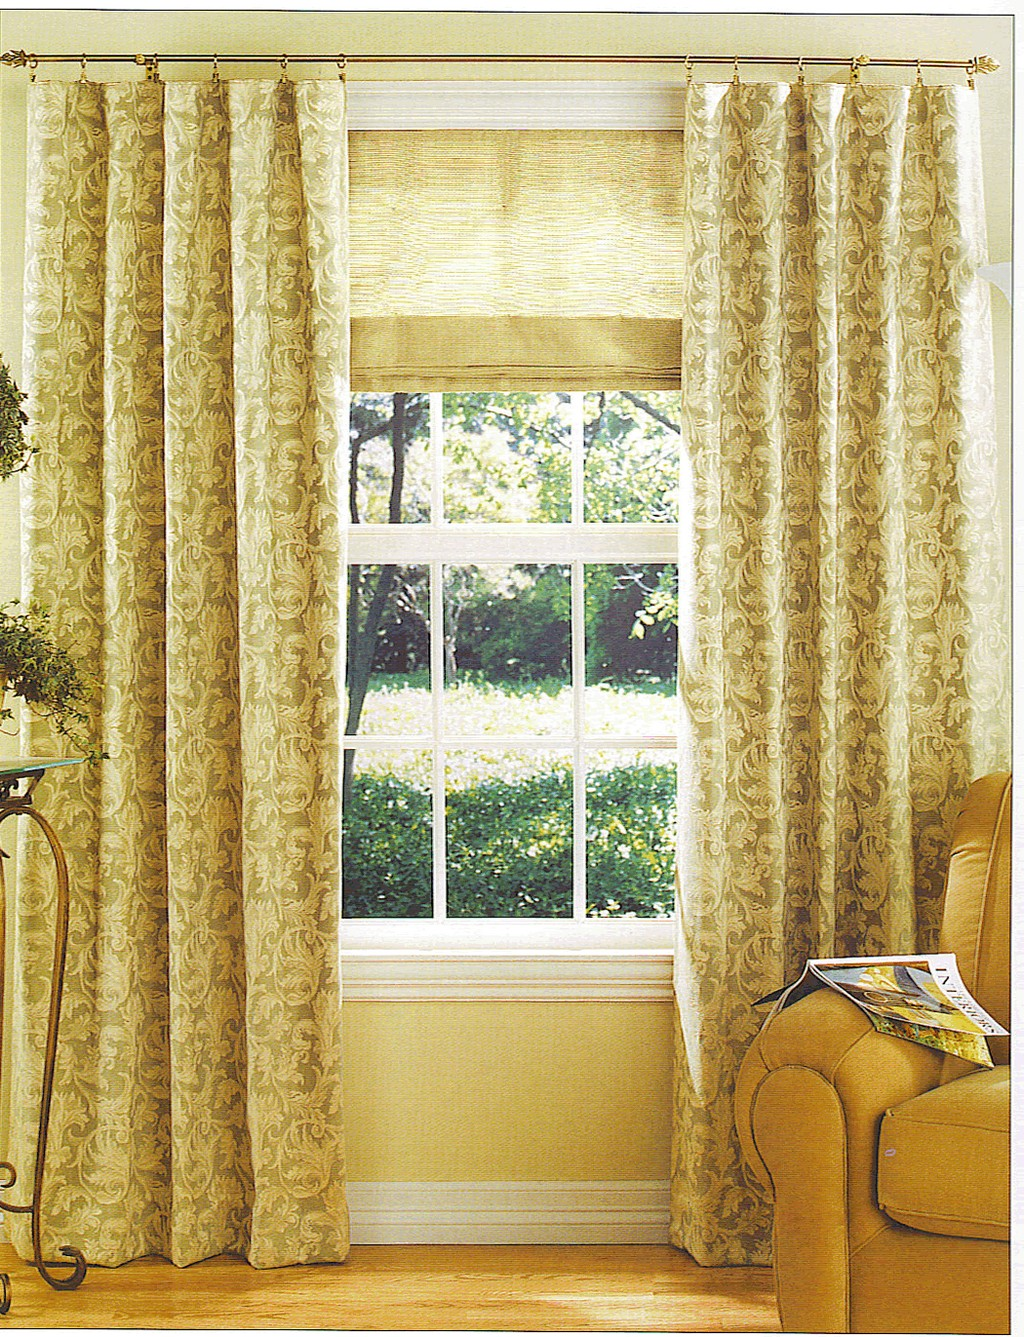 sewing drapes, insulated drapes, chenille drapes, lined drapes